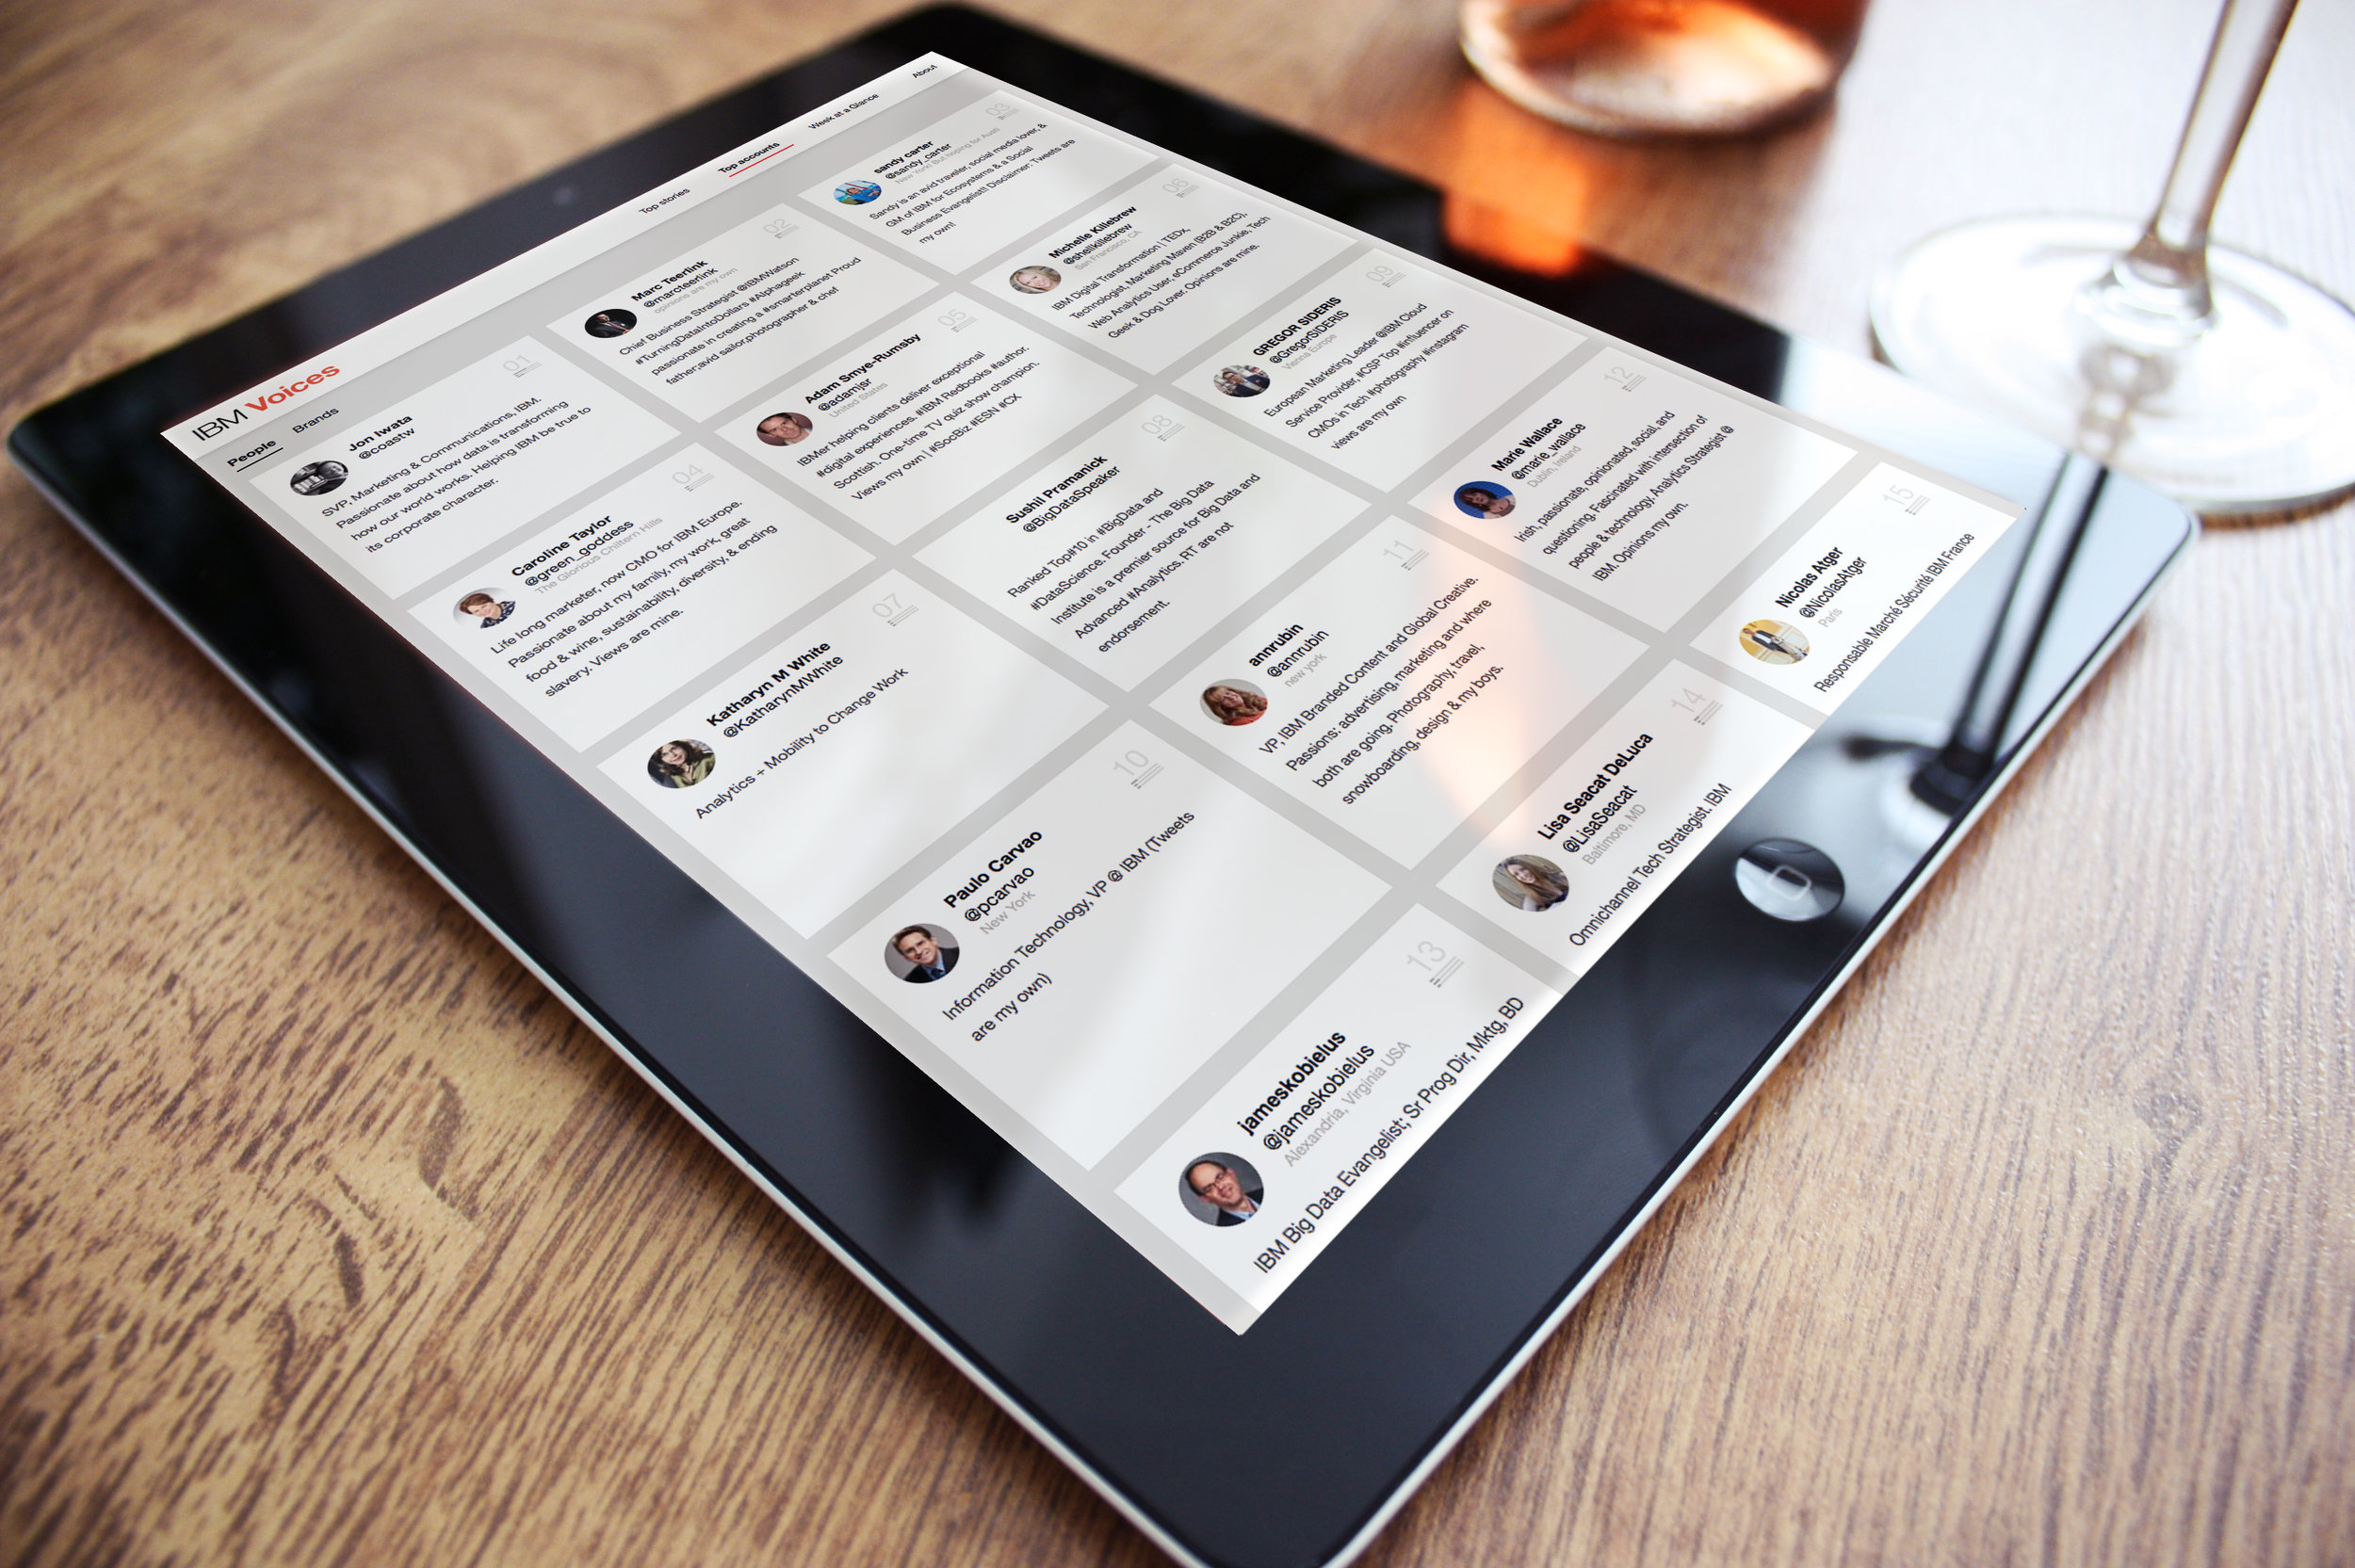 Influencer view on tablet